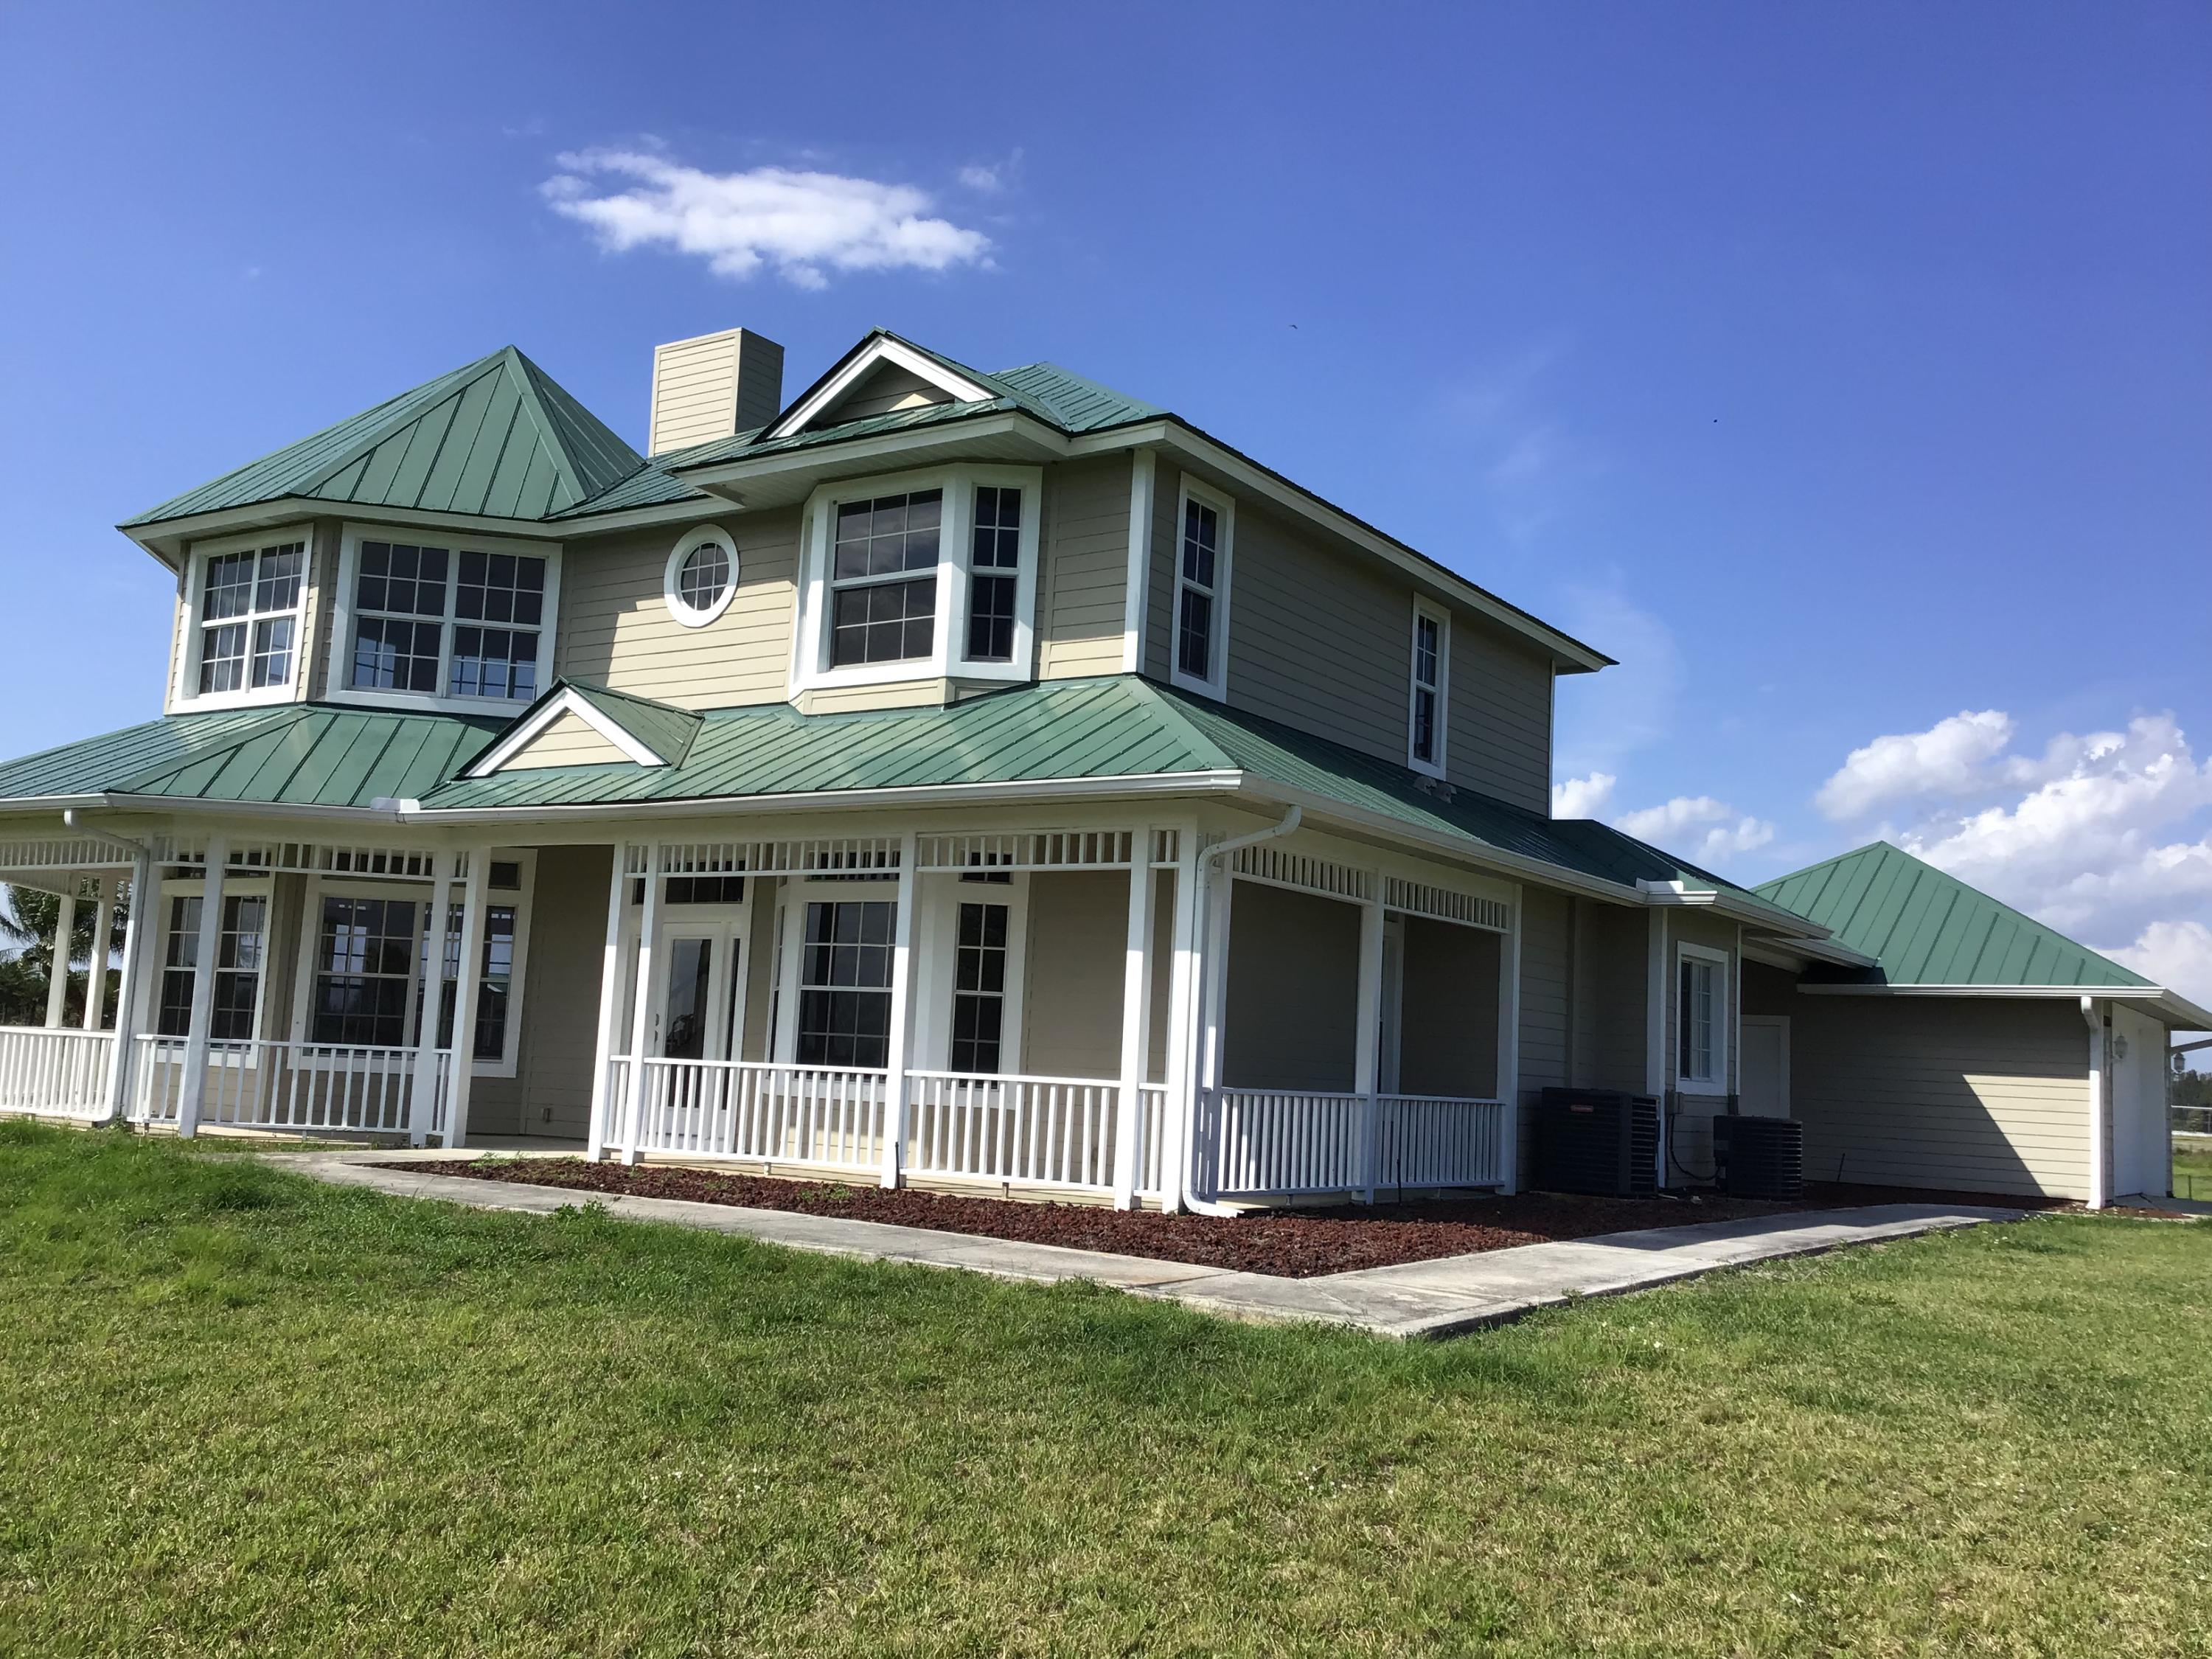 13700 SW Groveside Drive - Indiantown, Florida